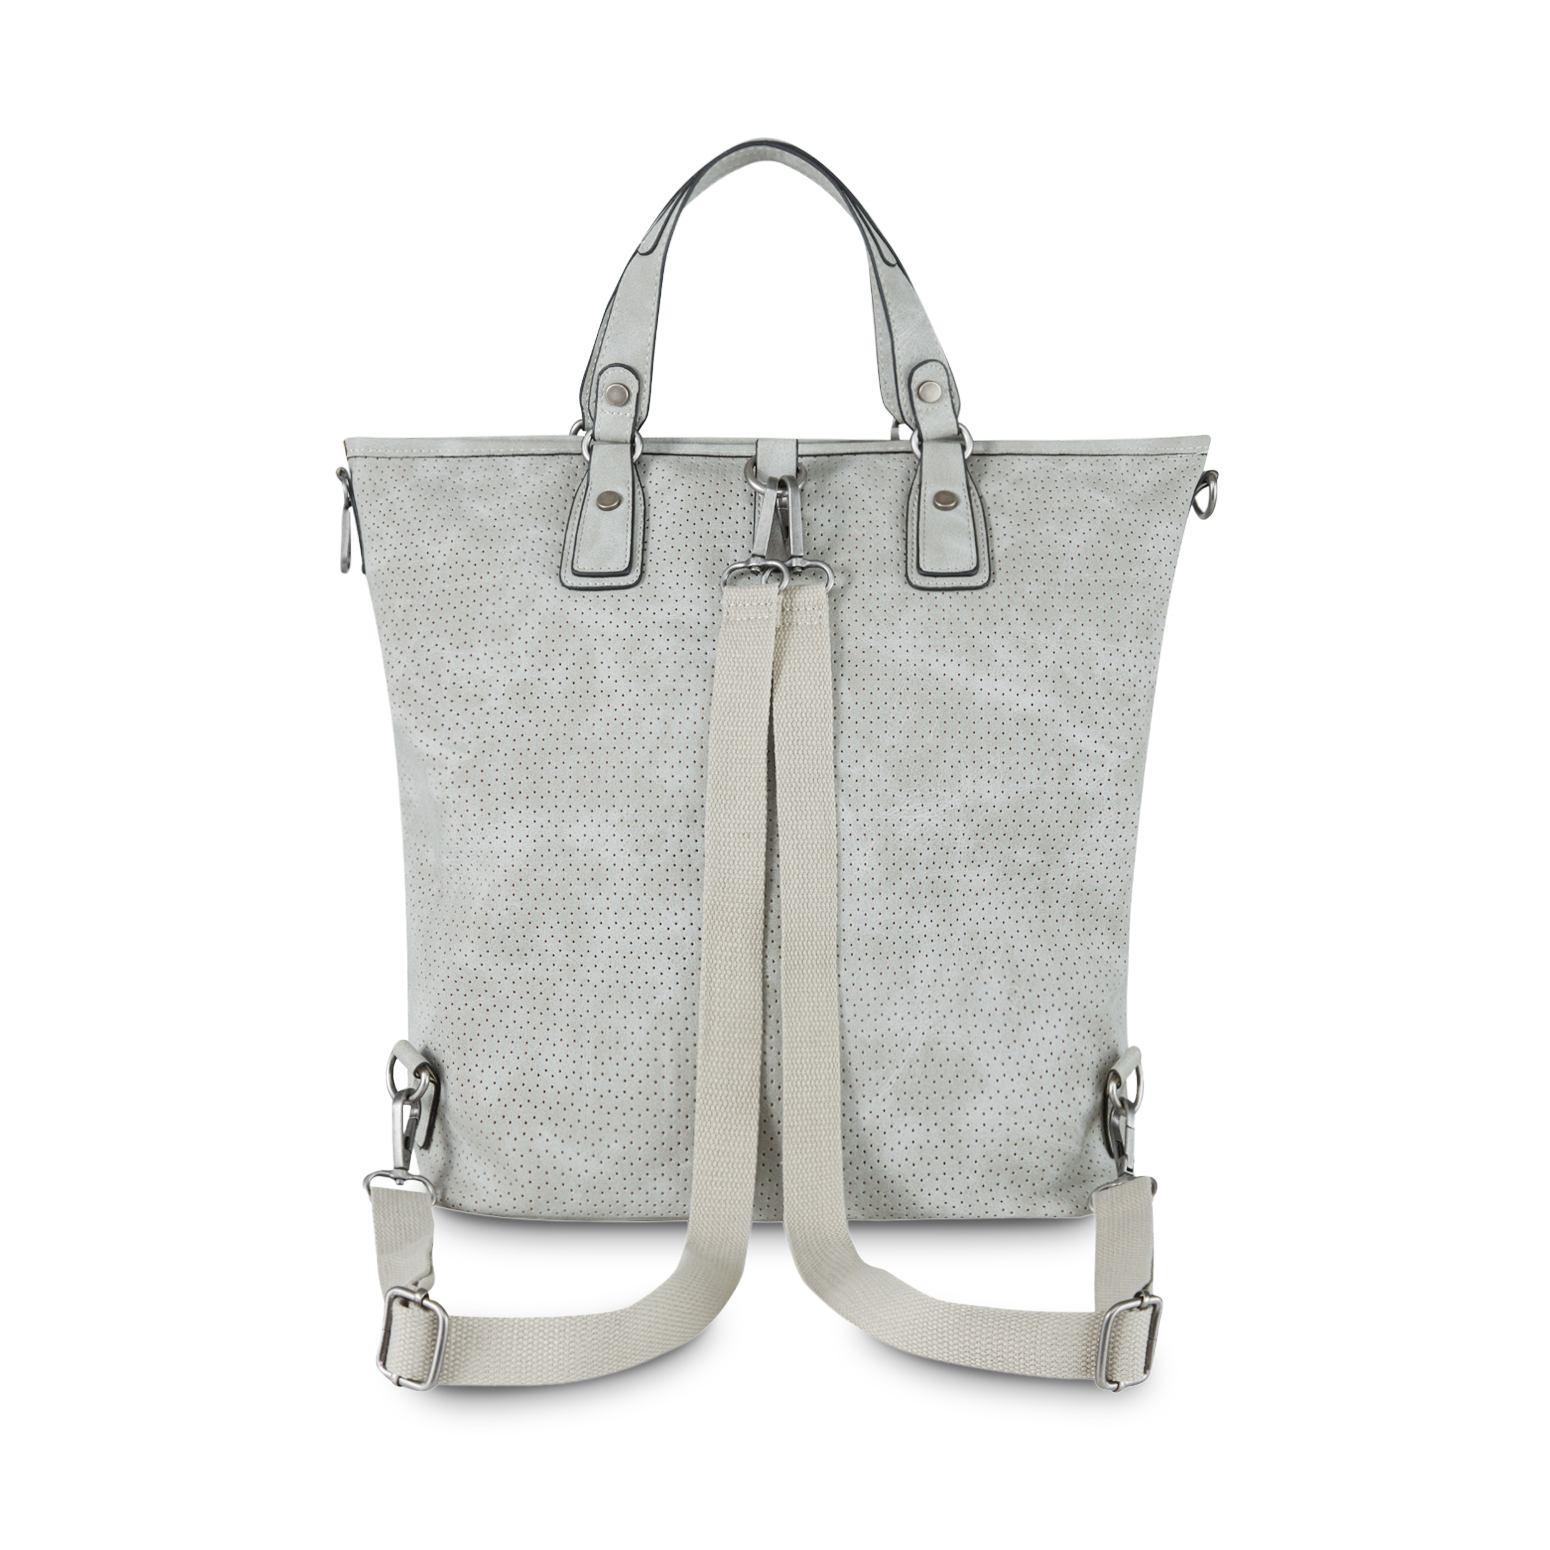 Handbag - grey, GREY COMB, hi-res